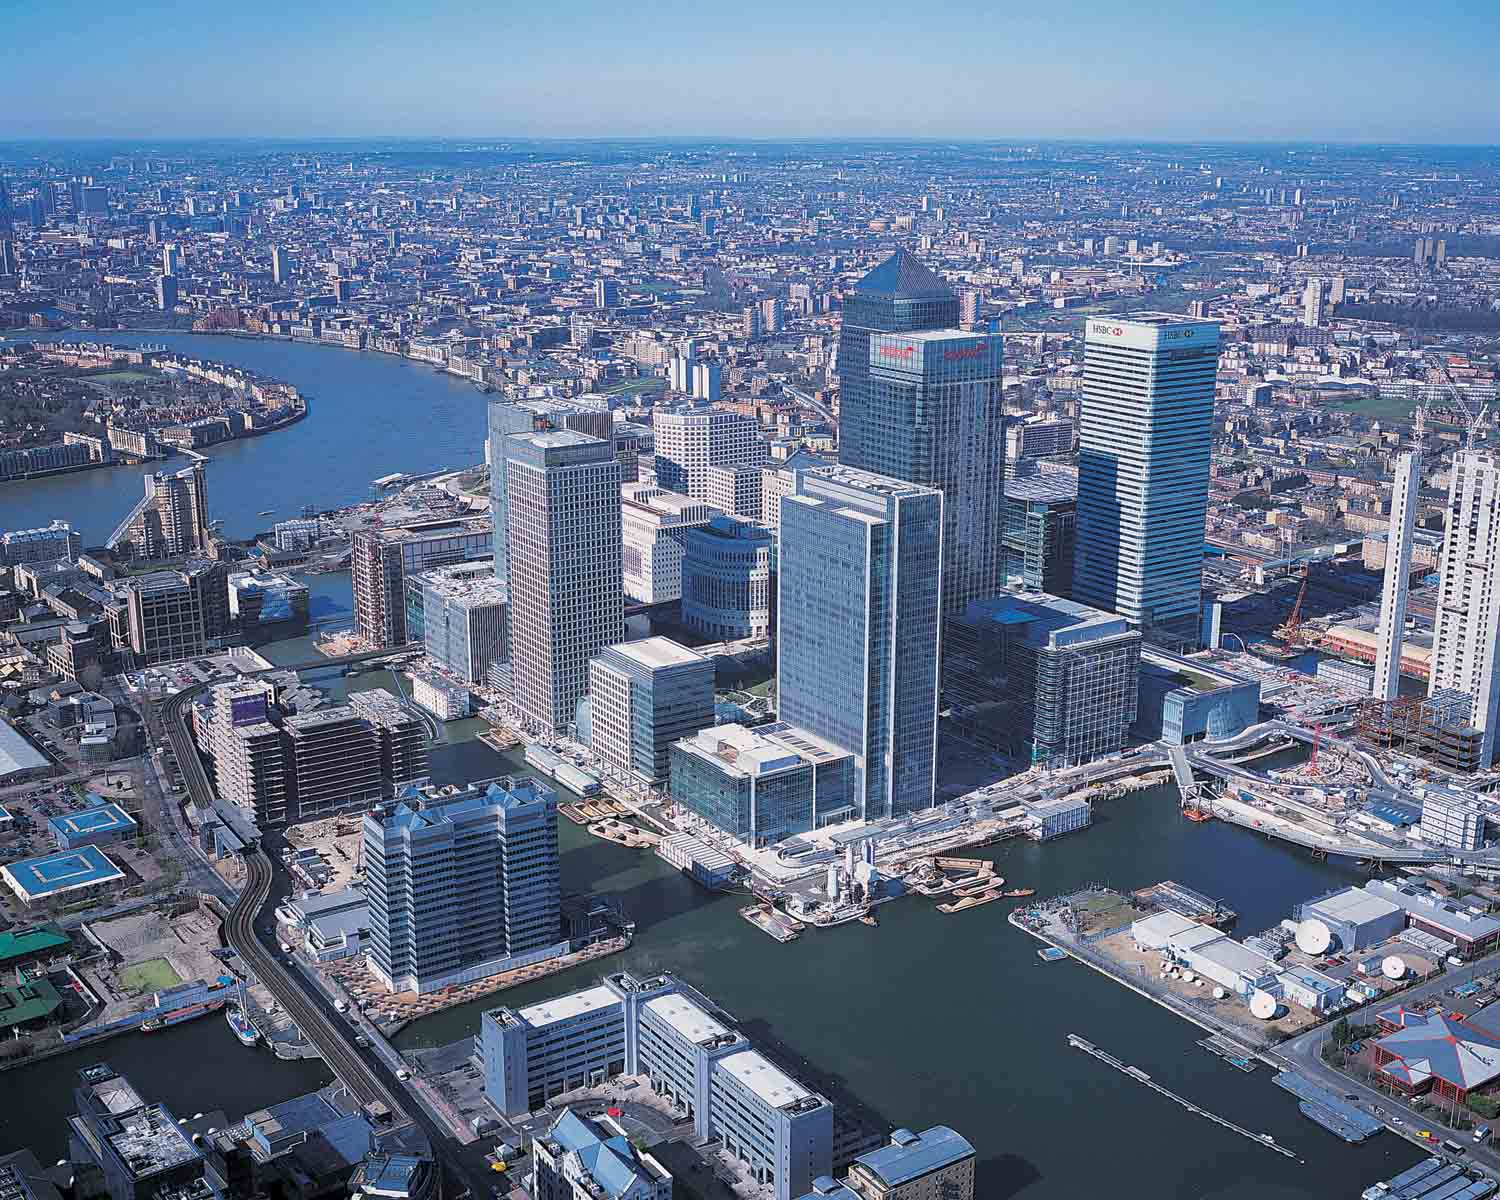 Canary Wharf Multiple Buildings American Hydrotech Inc